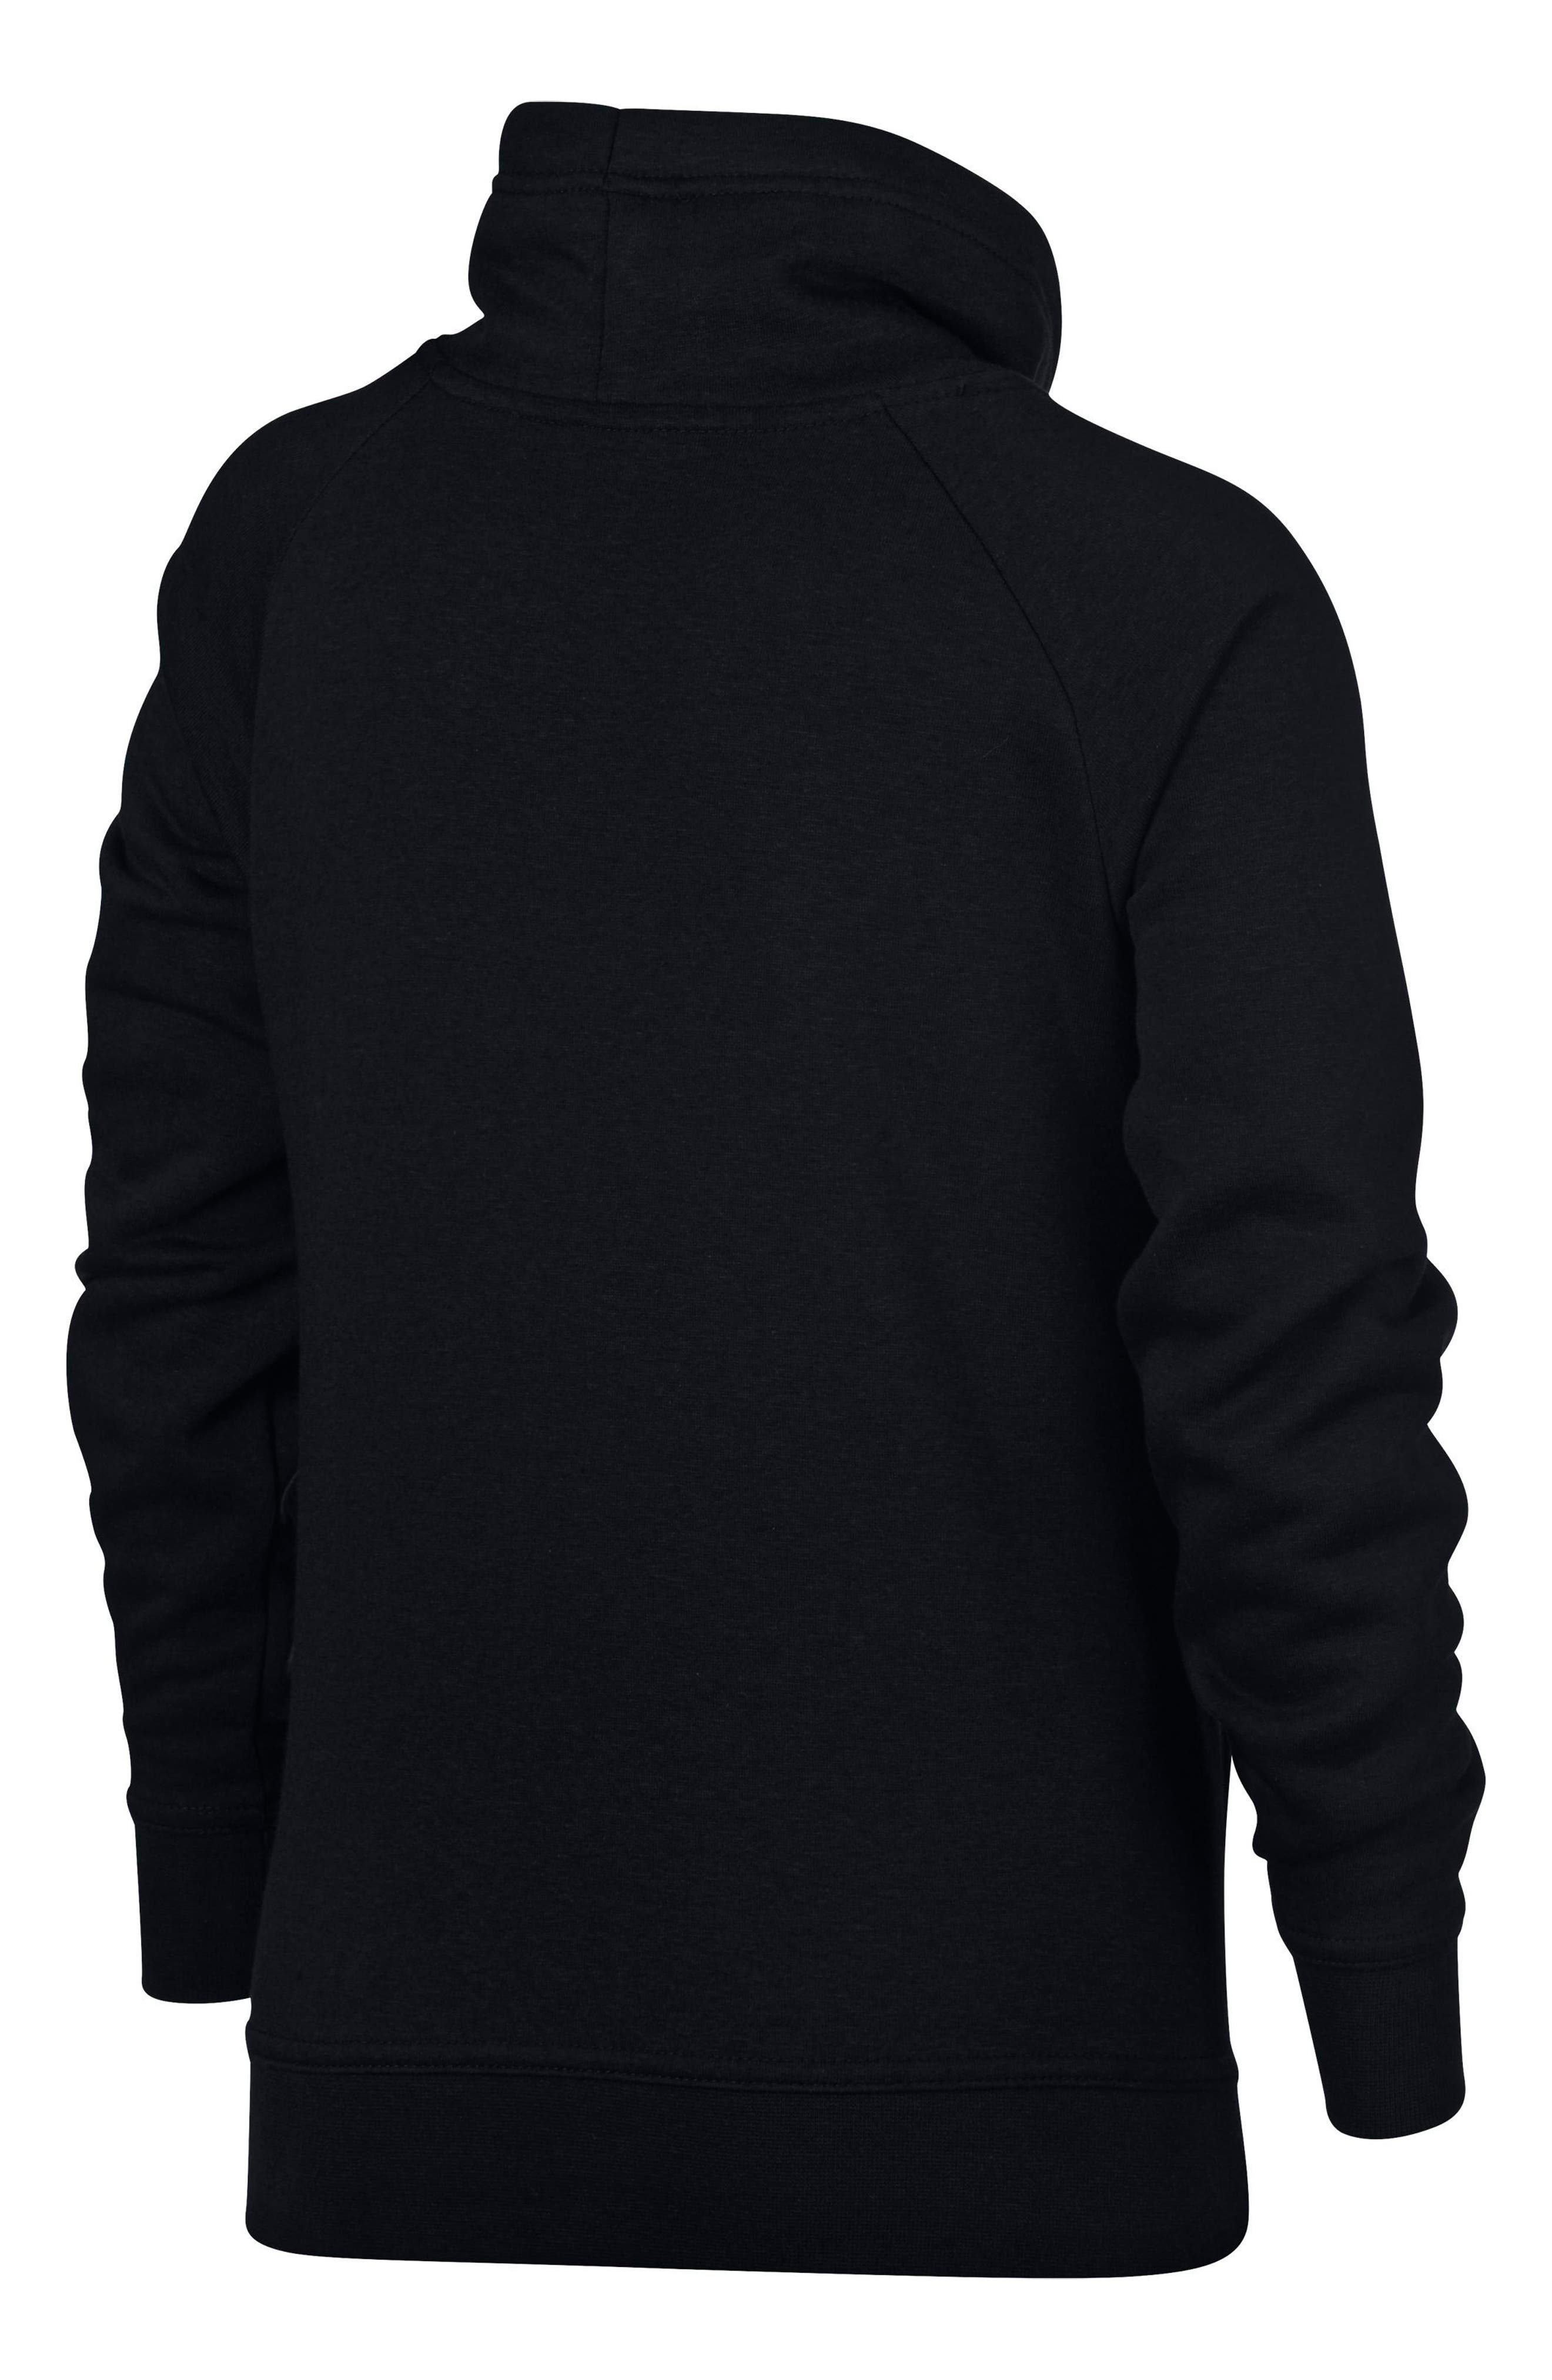 Long Sleeve Pullover,                             Alternate thumbnail 2, color,                             010